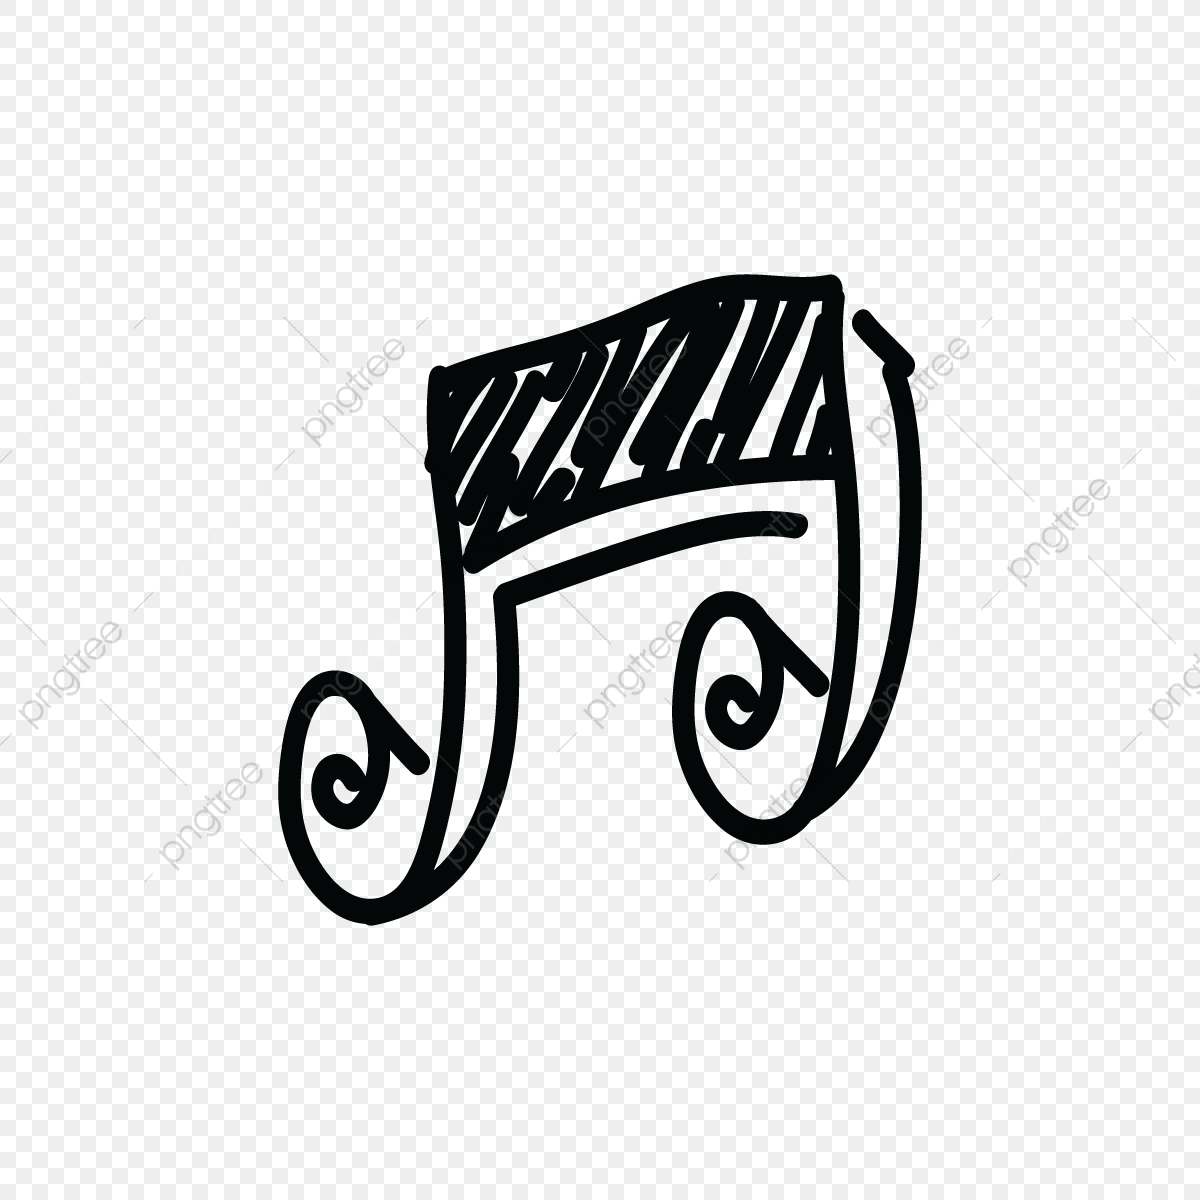 music logo png vector psd and clipart with transparent background for free download pngtree https pngtree com freepng note music logo icon hand drawing 3720930 html